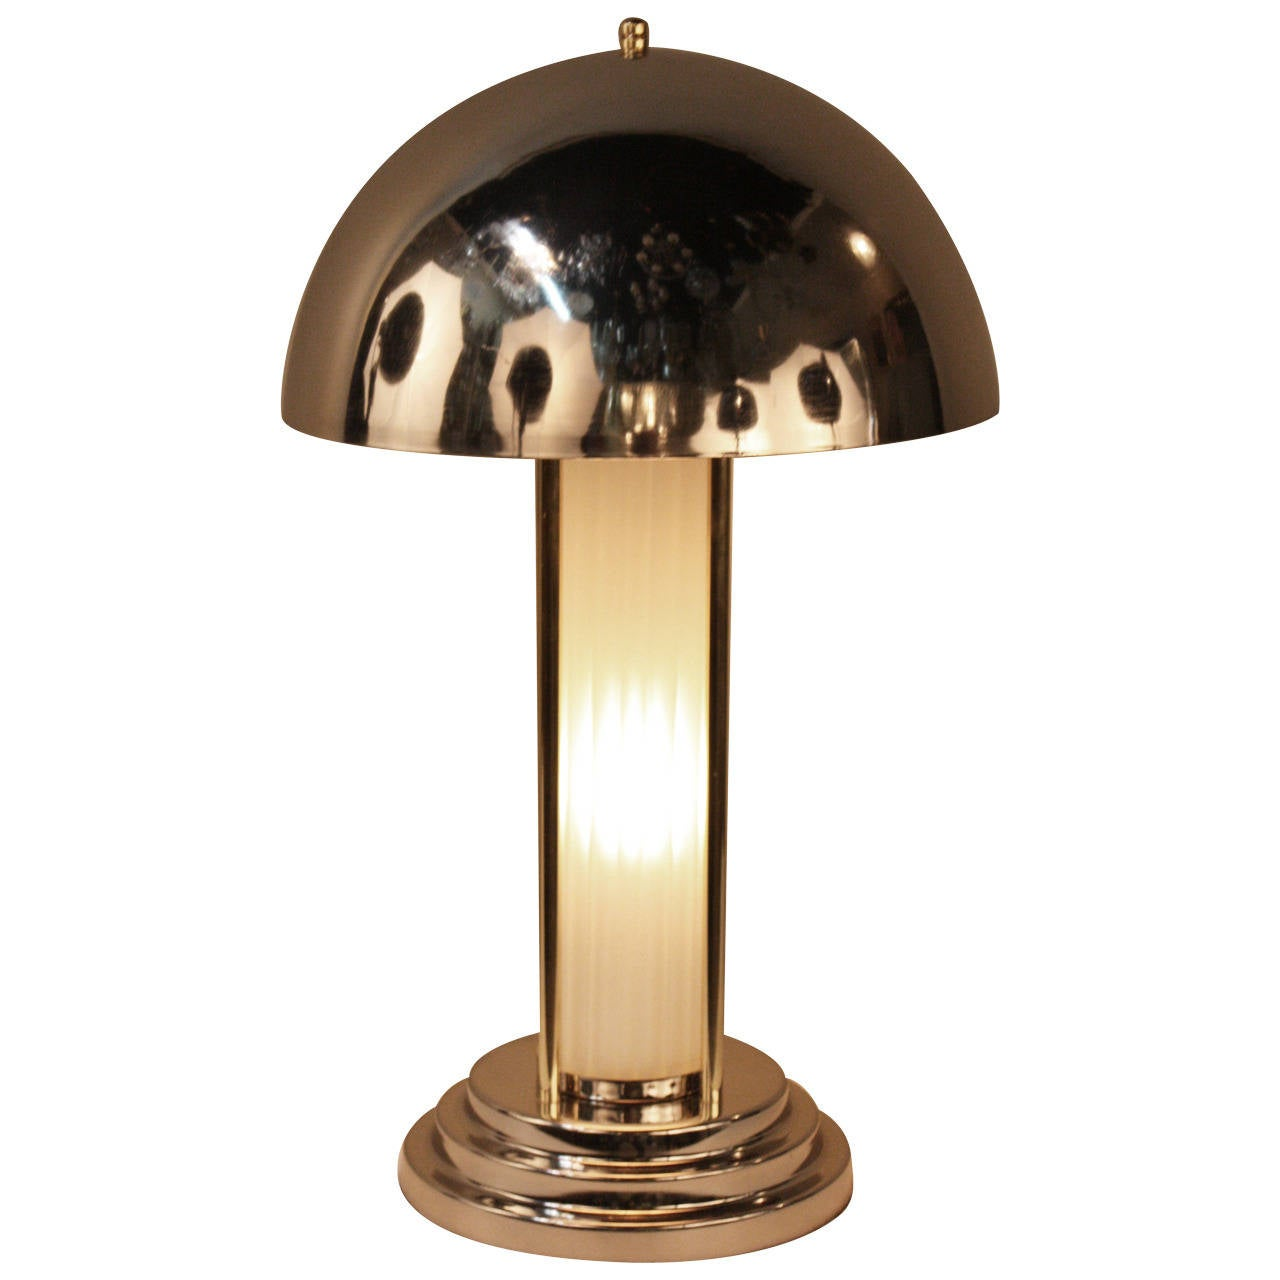 French art deco table lamp at 1stdibs for Art deco style lamp